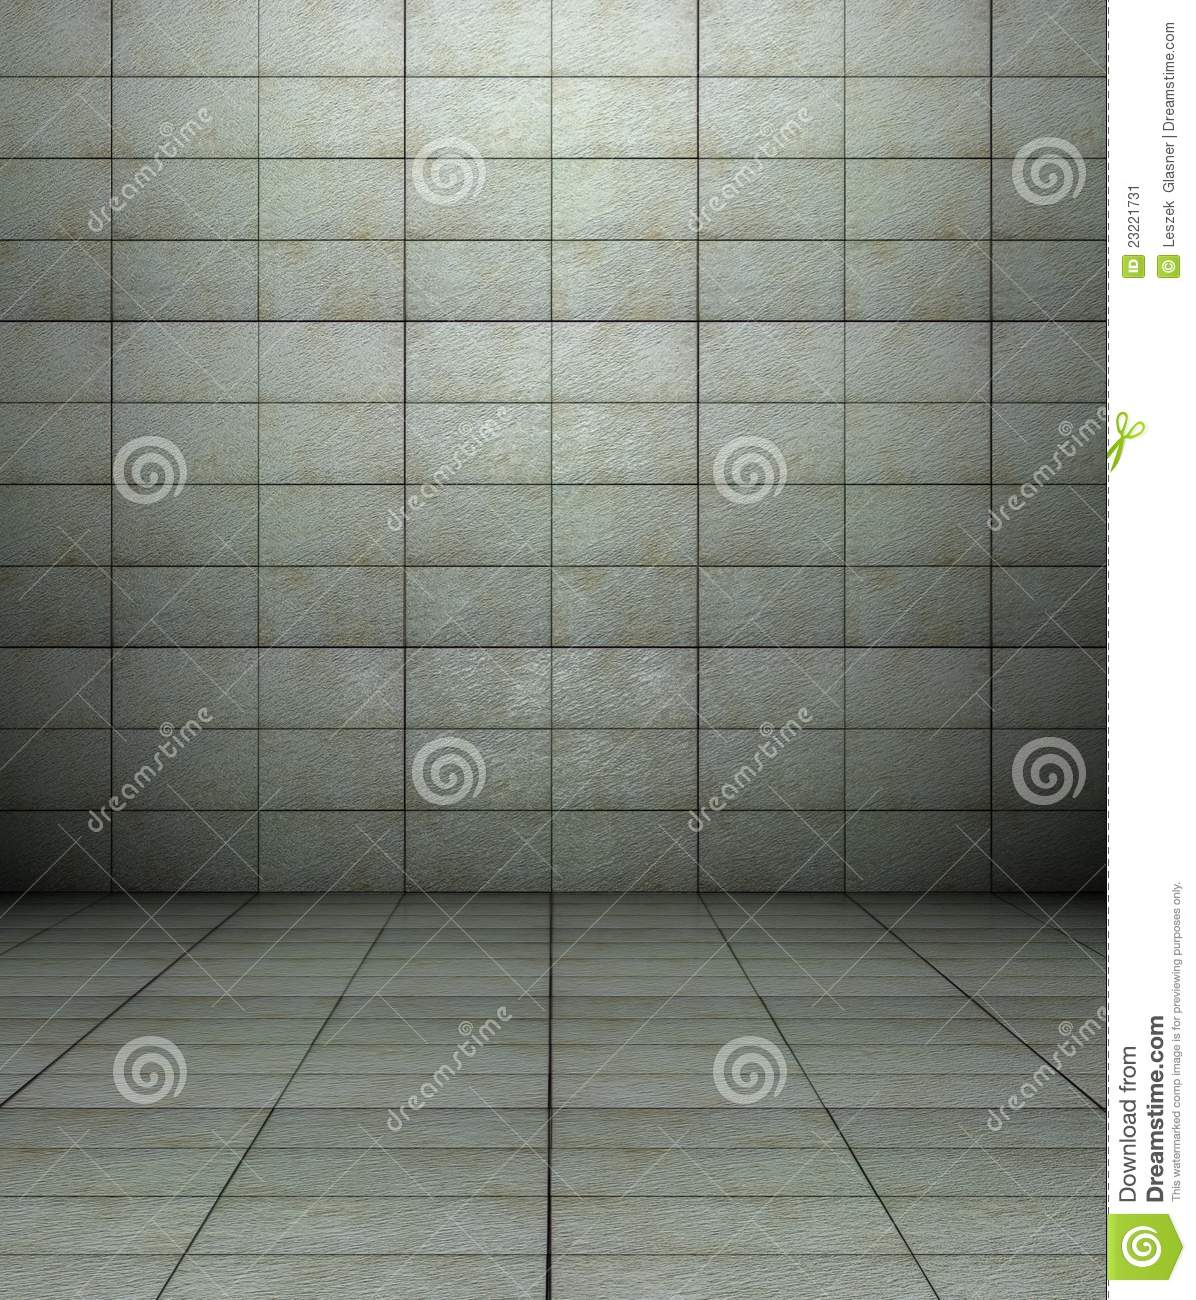 Download 3d Wall With Tiles Texture Empty Interior Stock Illustration